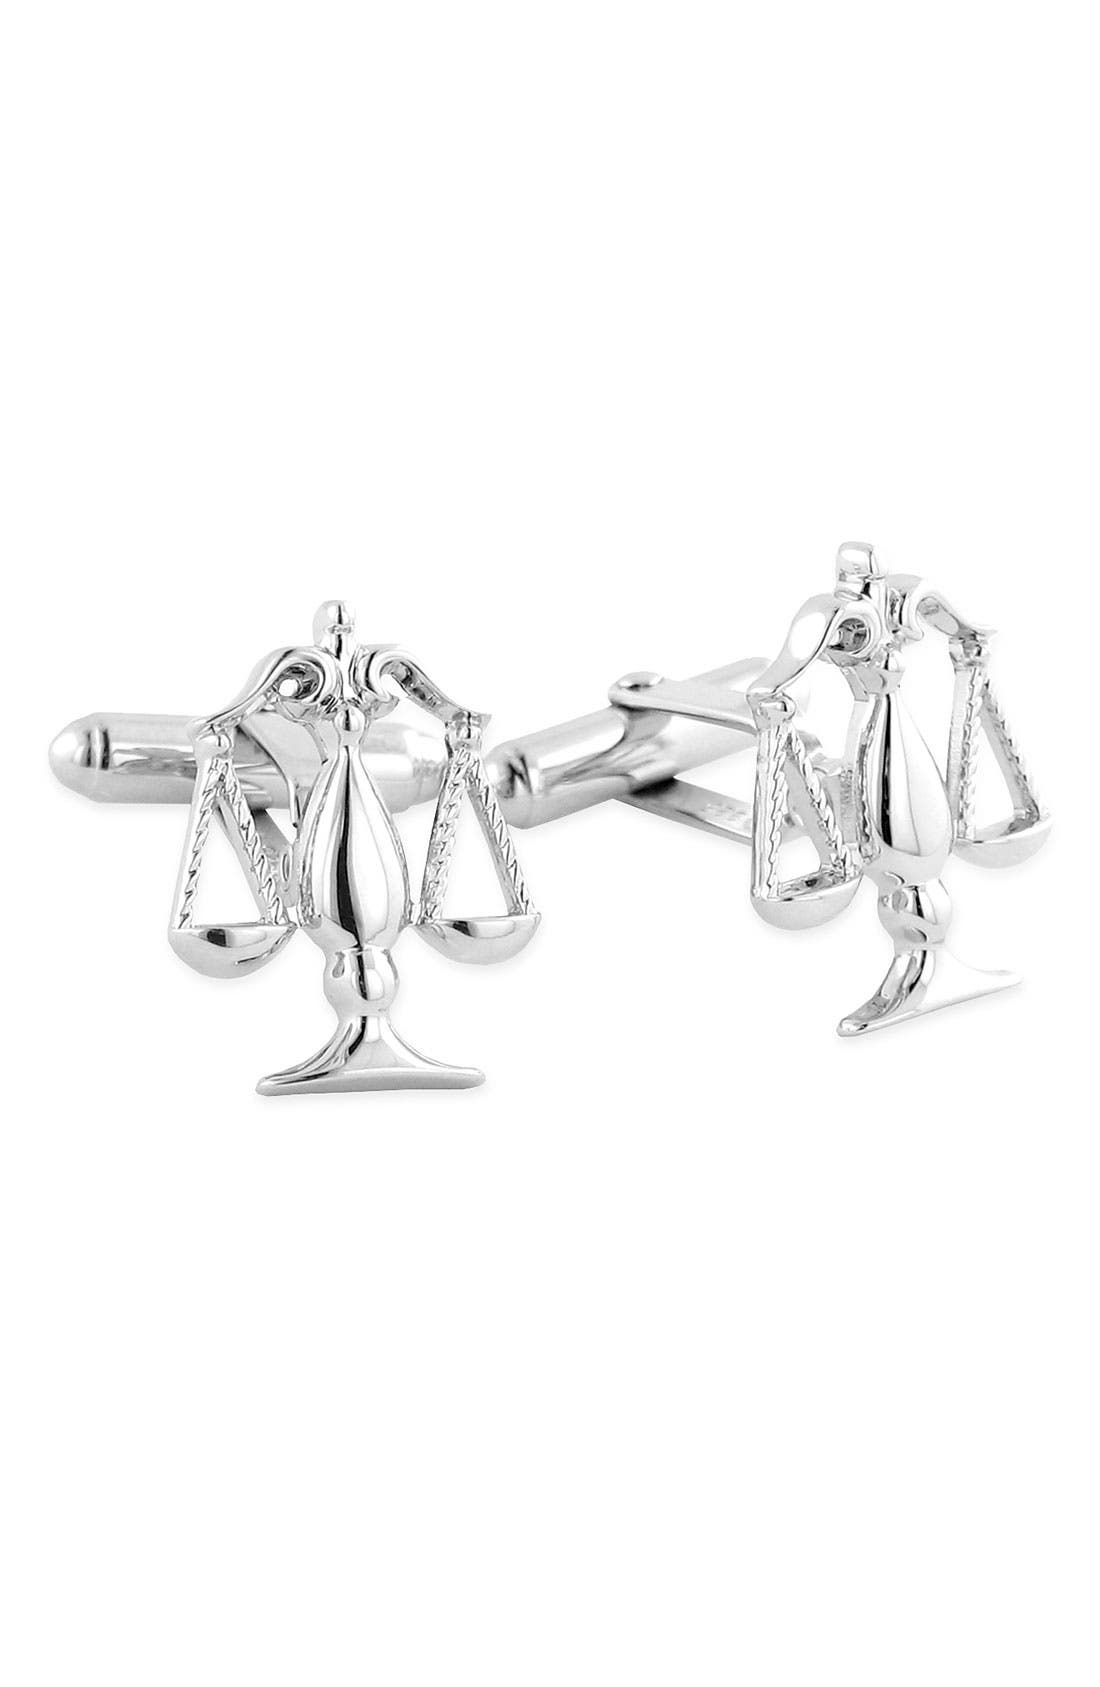 Knot Cuff Links,                             Main thumbnail 5, color,